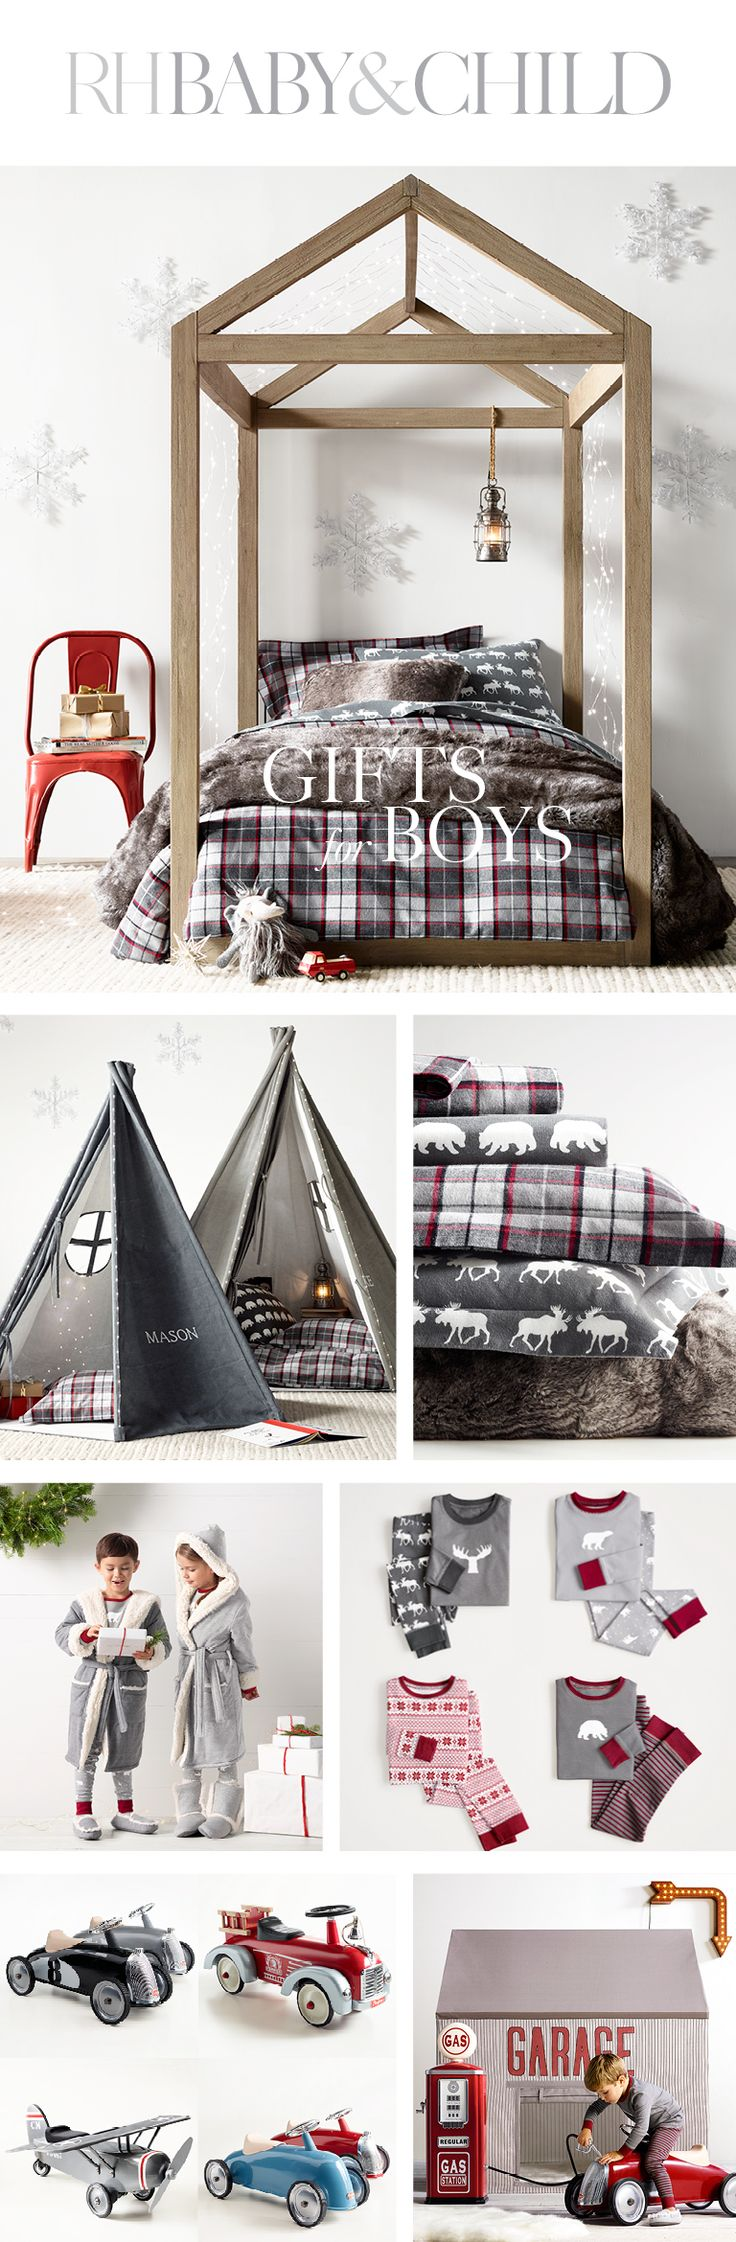 Make your little one's dreams come true with an array of wondrous holiday gifts for boys from RH Baby & Child.